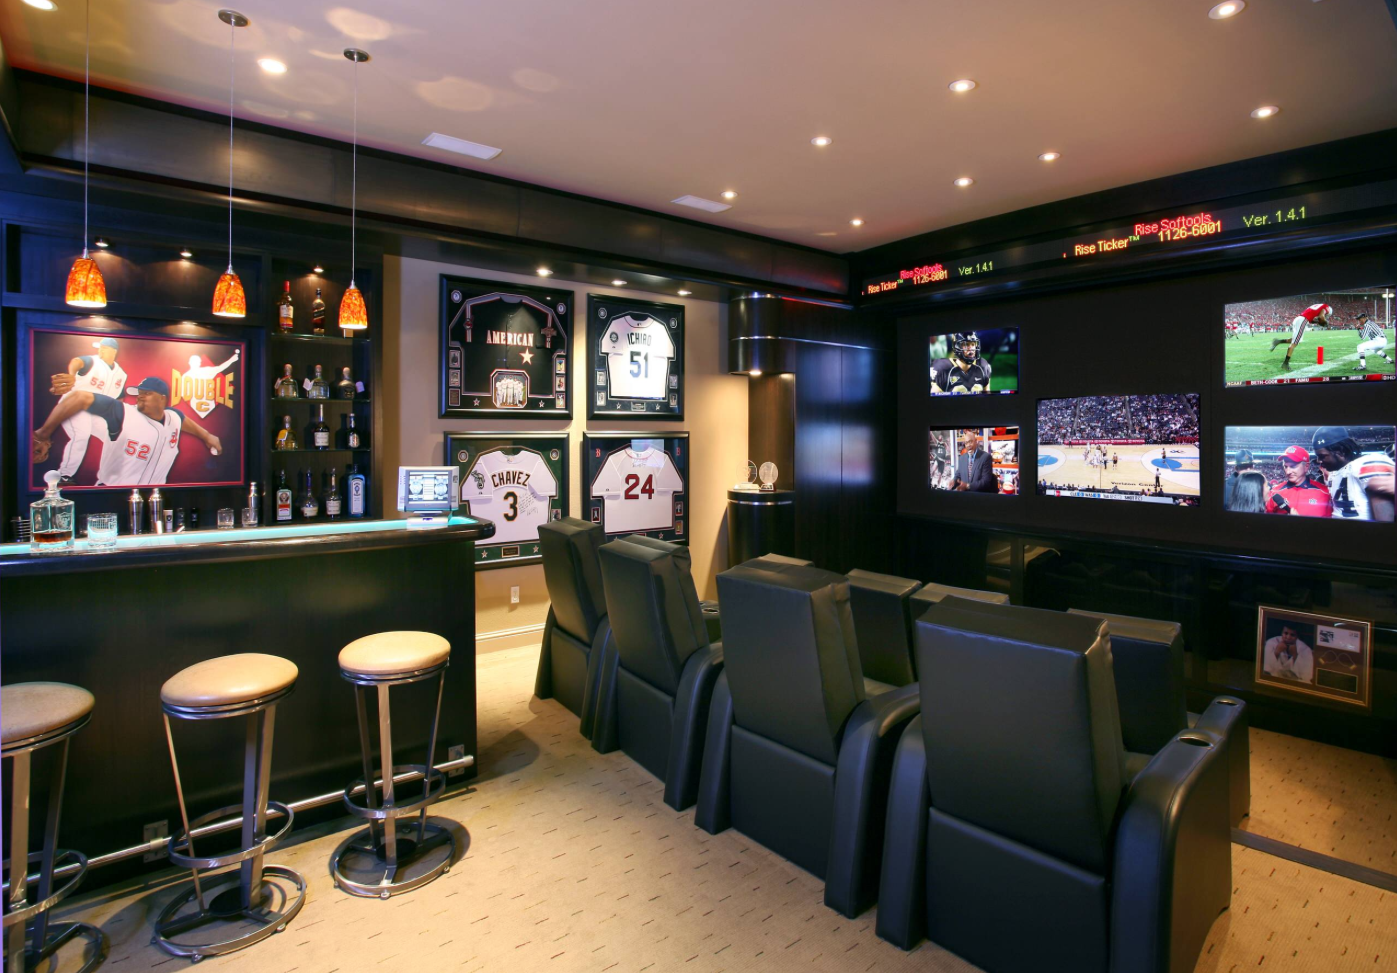 50 Best Man Cave Ideas and Designs for 2016 | Pinterest | Sports ...